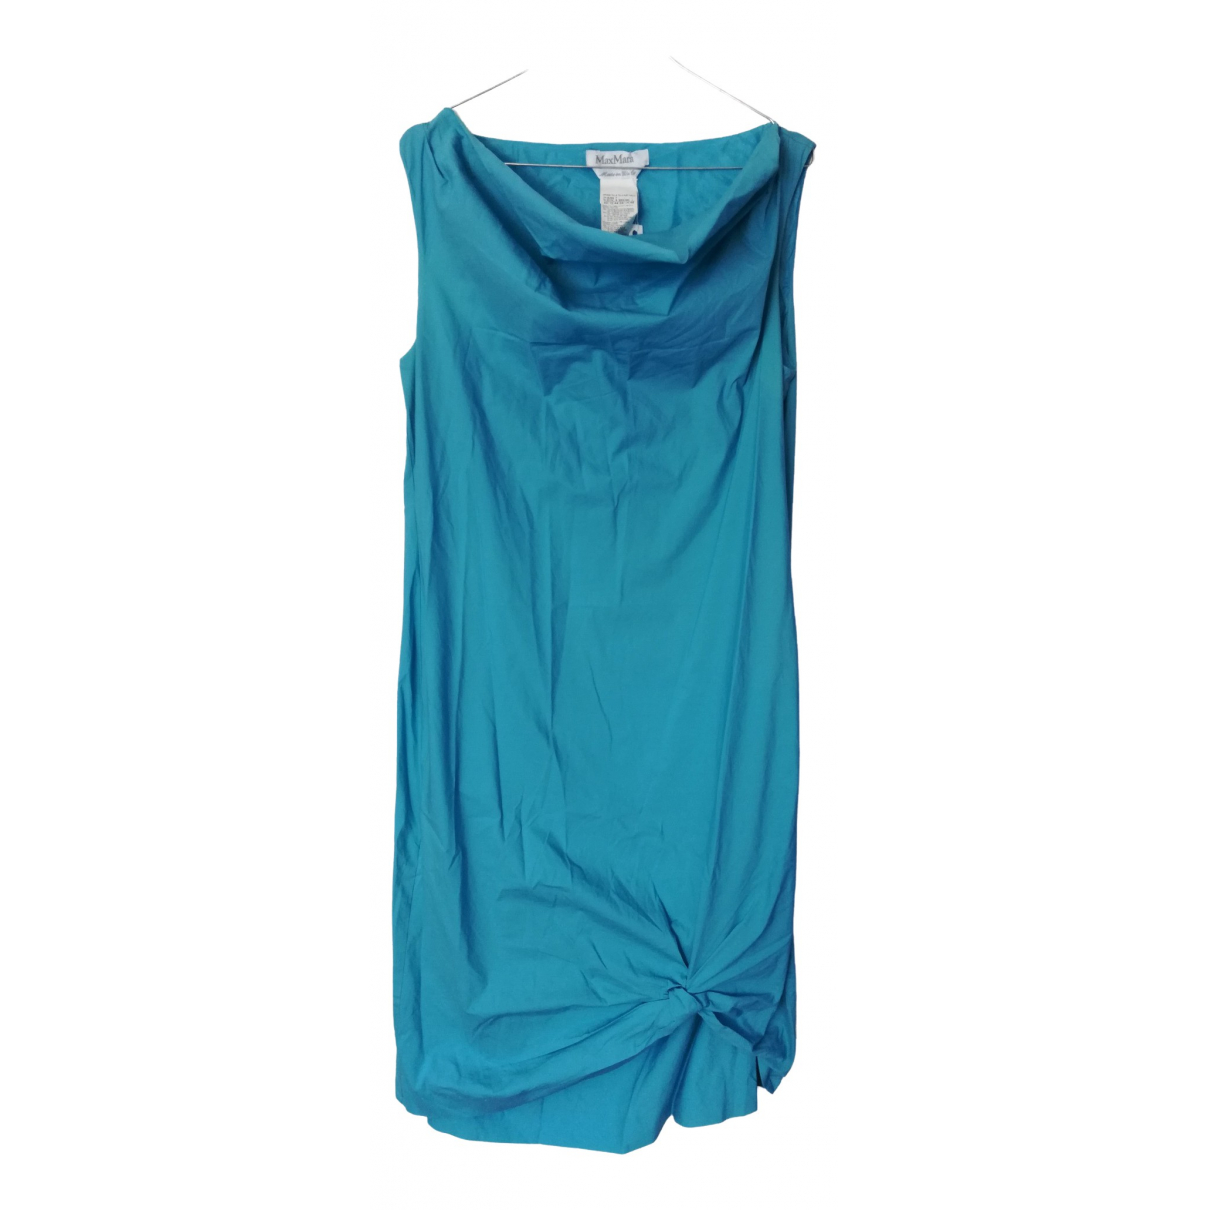 Max Mara \N Turquoise Cotton dress for Women 46 IT